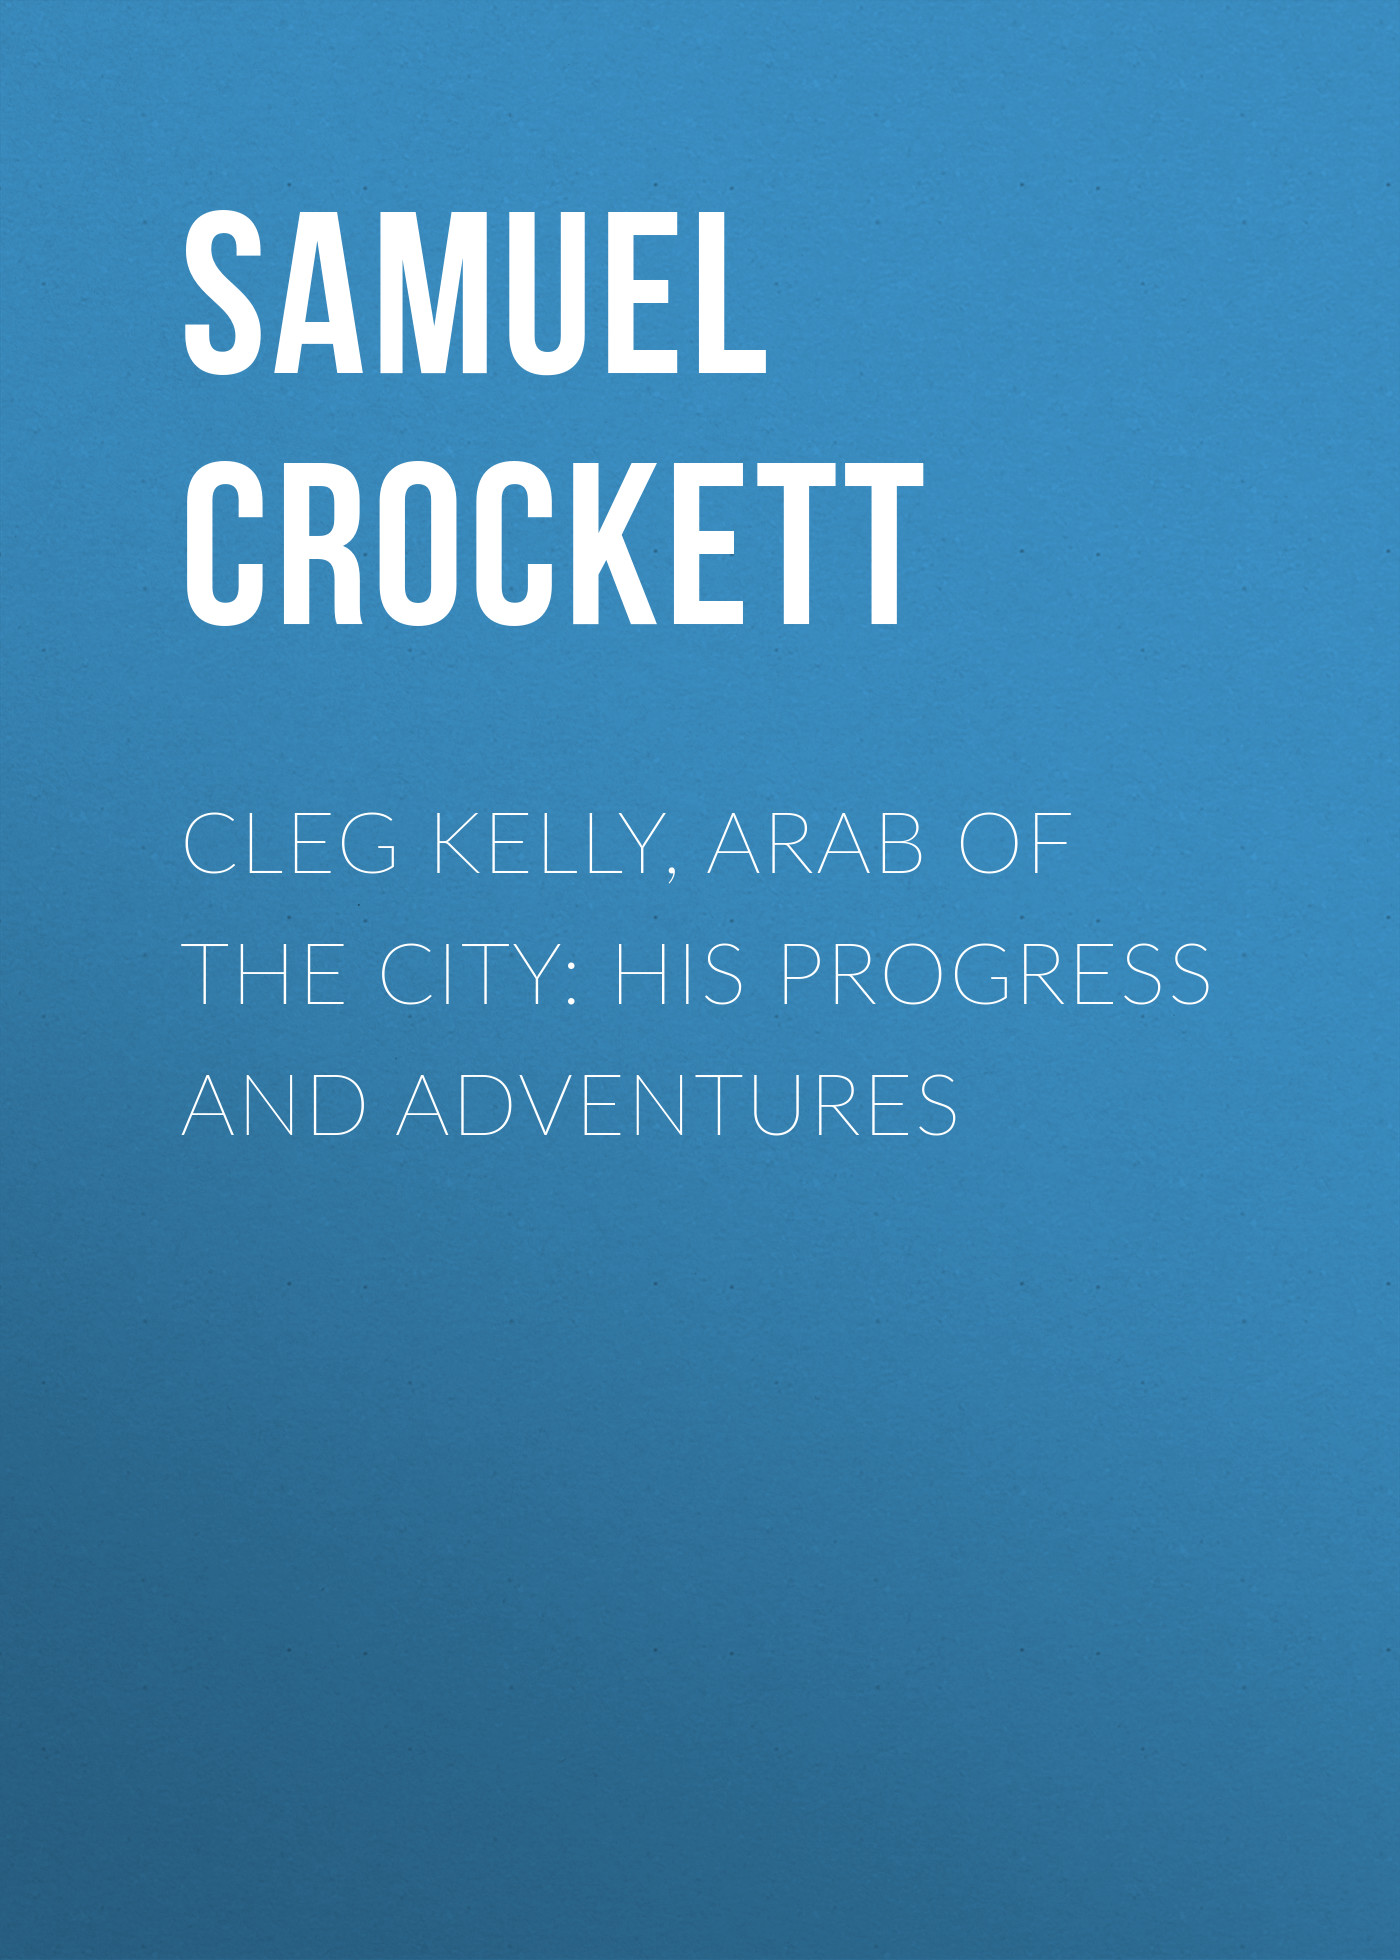 цены Crockett Samuel Rutherford Cleg Kelly, Arab of the City: His Progress and Adventures